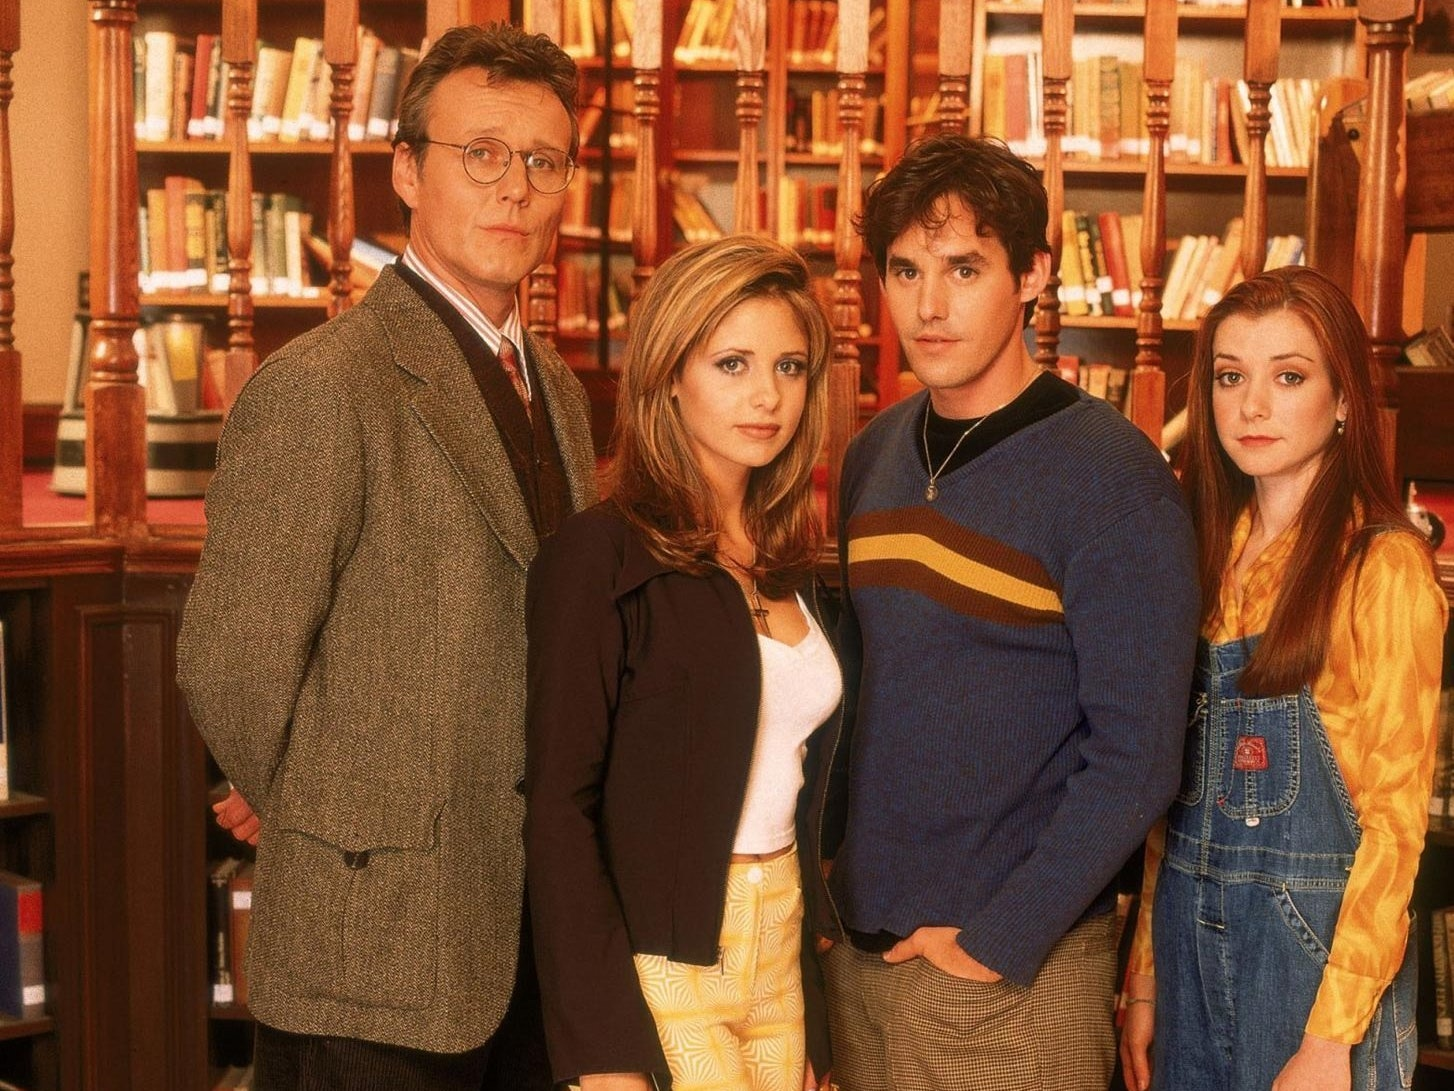 Become an Accredited, Professional 'Buffy the Vampire' Fan